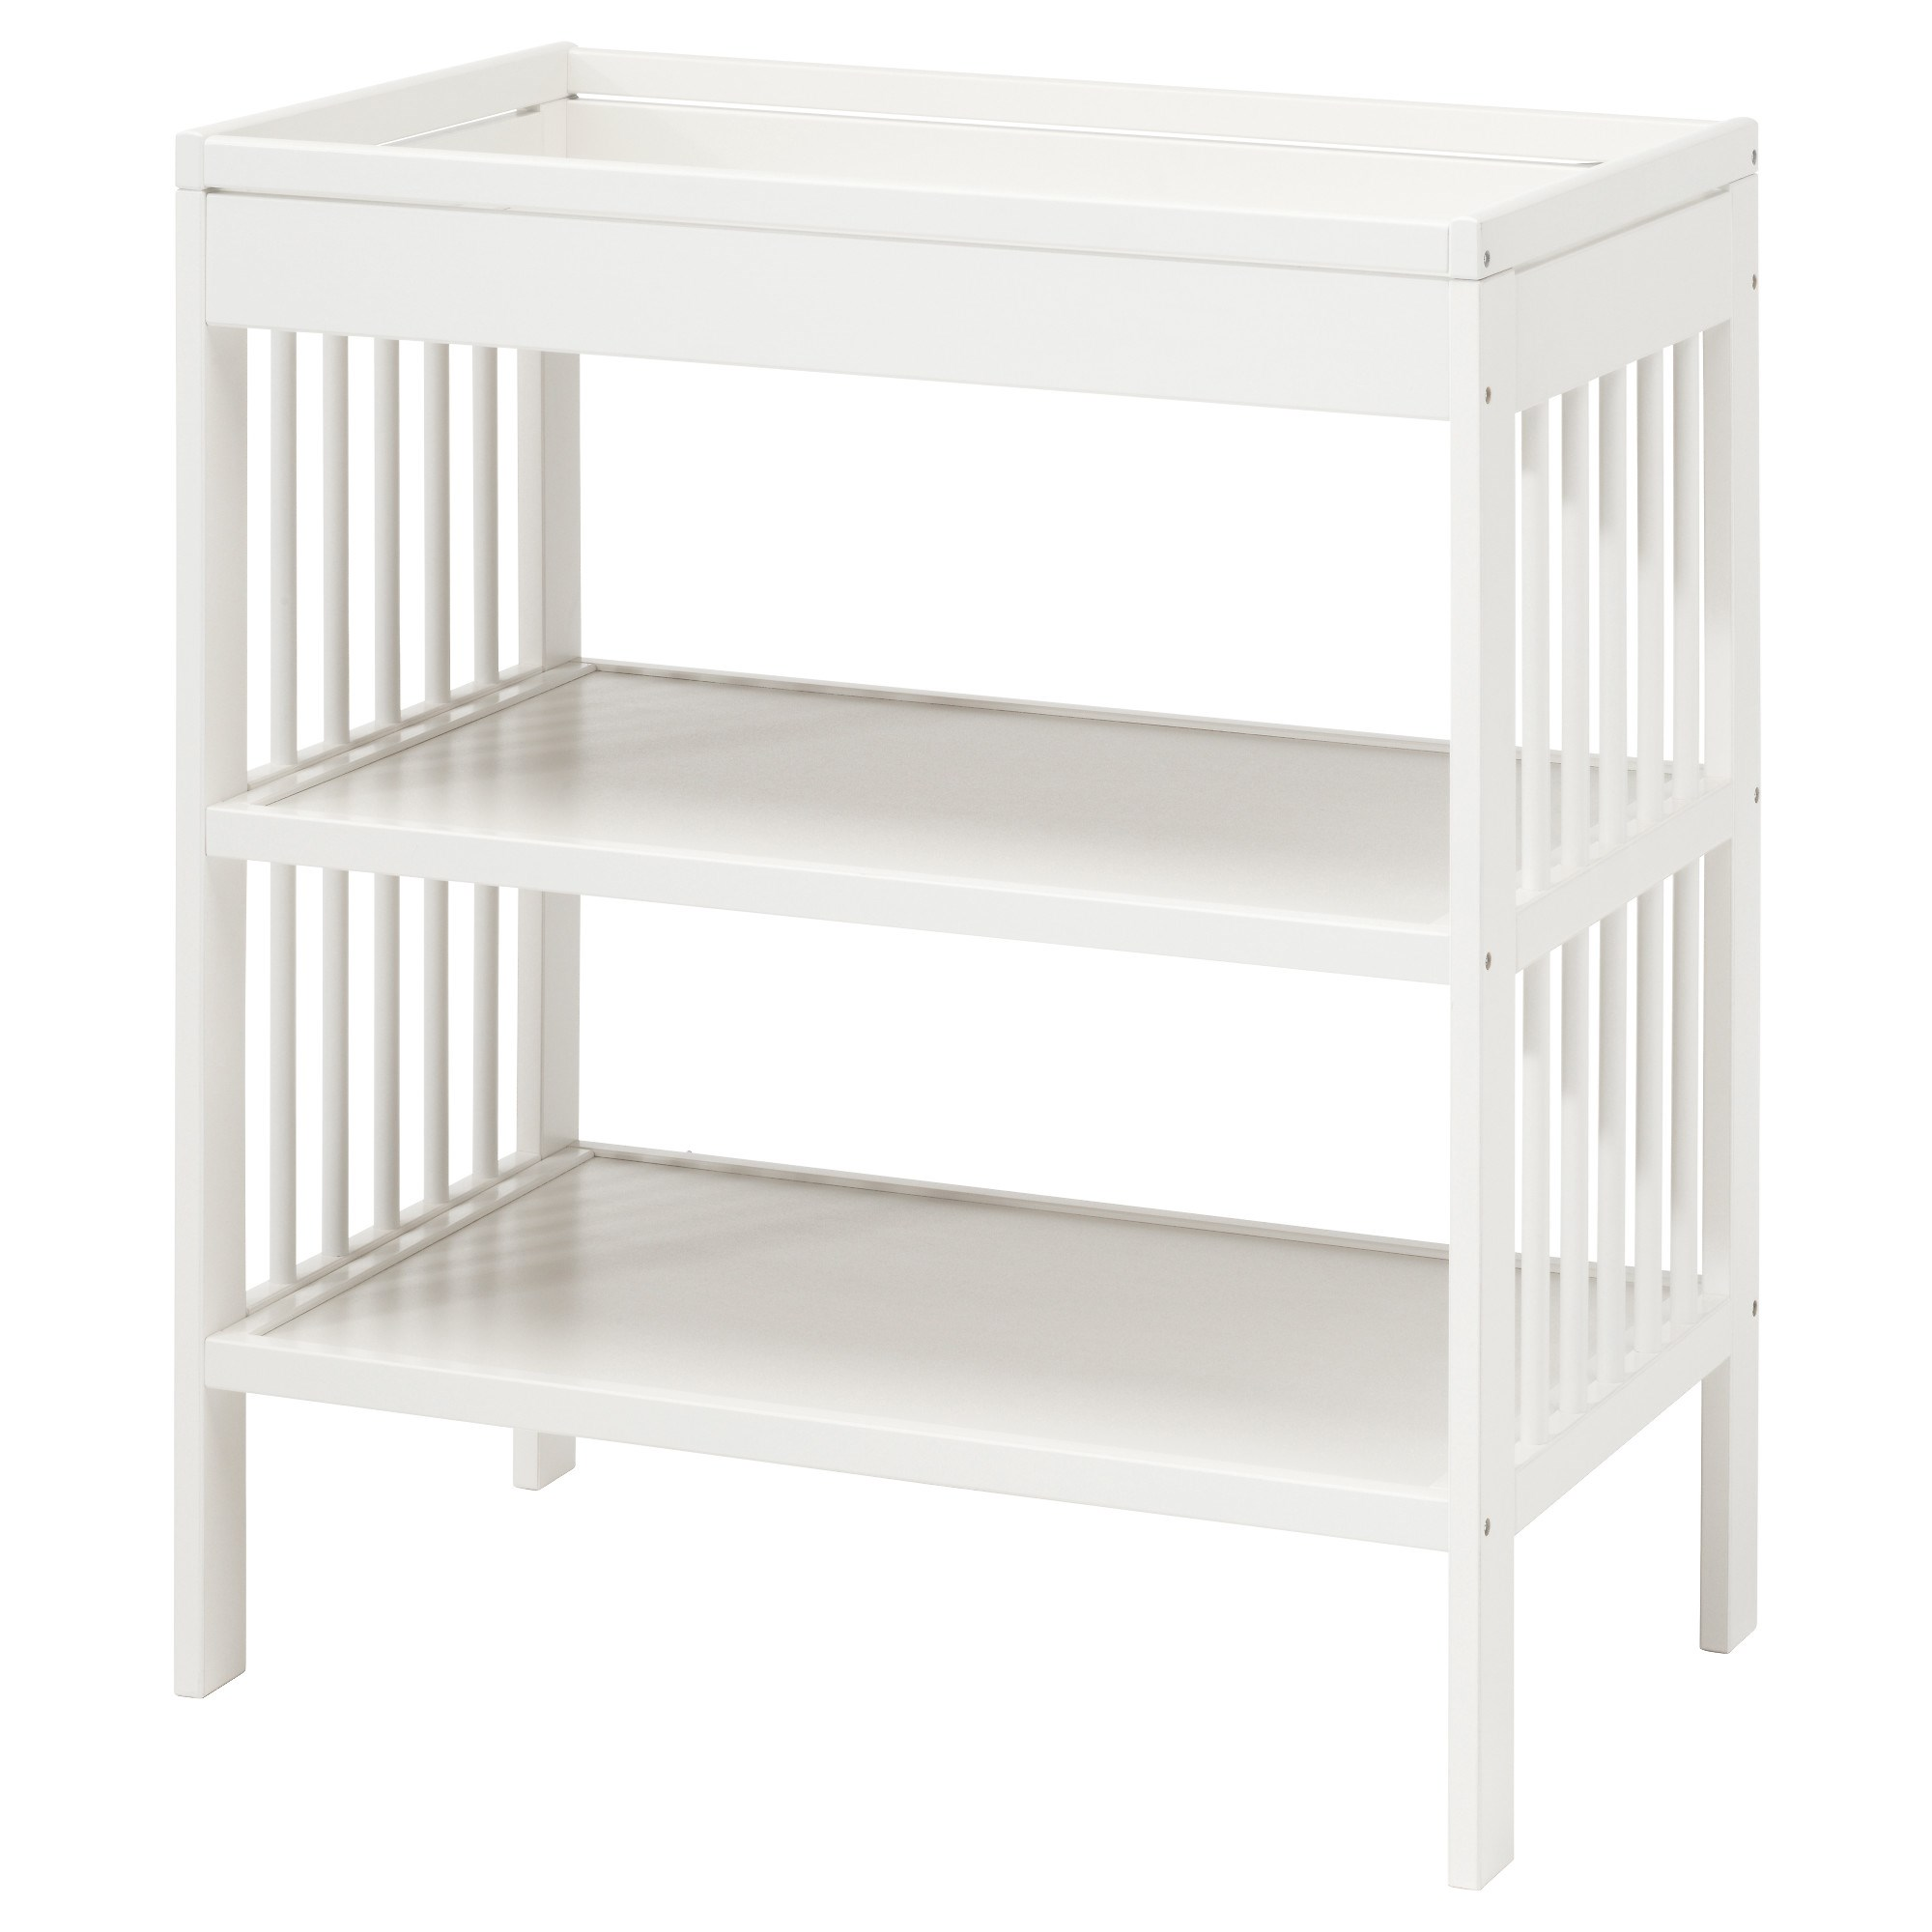 Beau Furniture. GULLIVER Changing Table